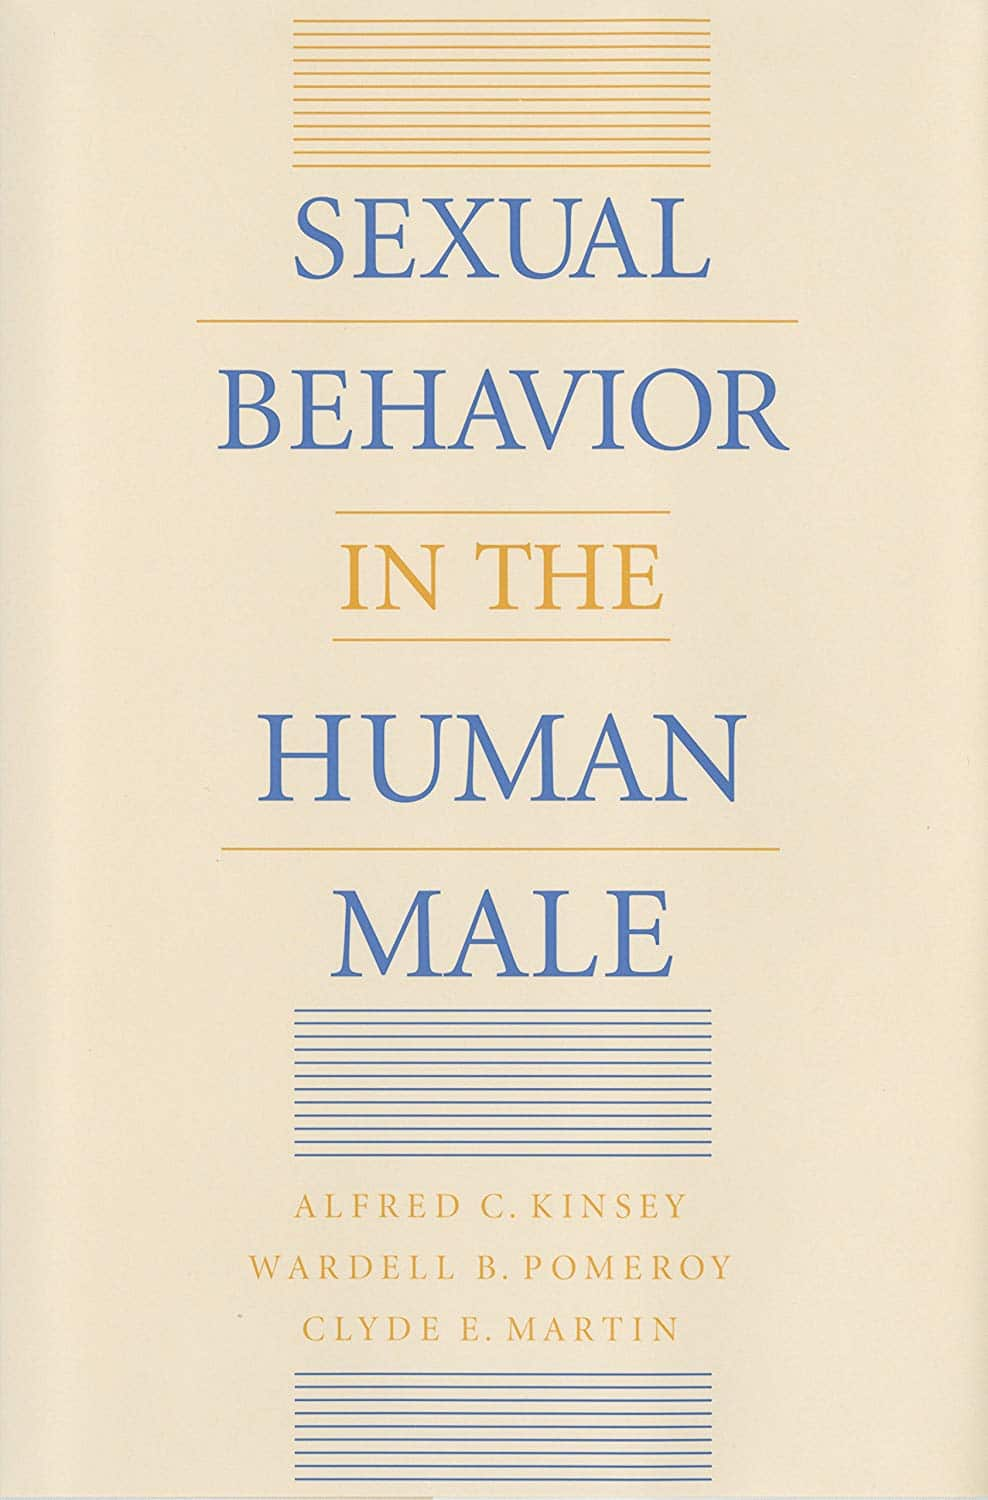 Sexual Behavior In The Human Male book cover